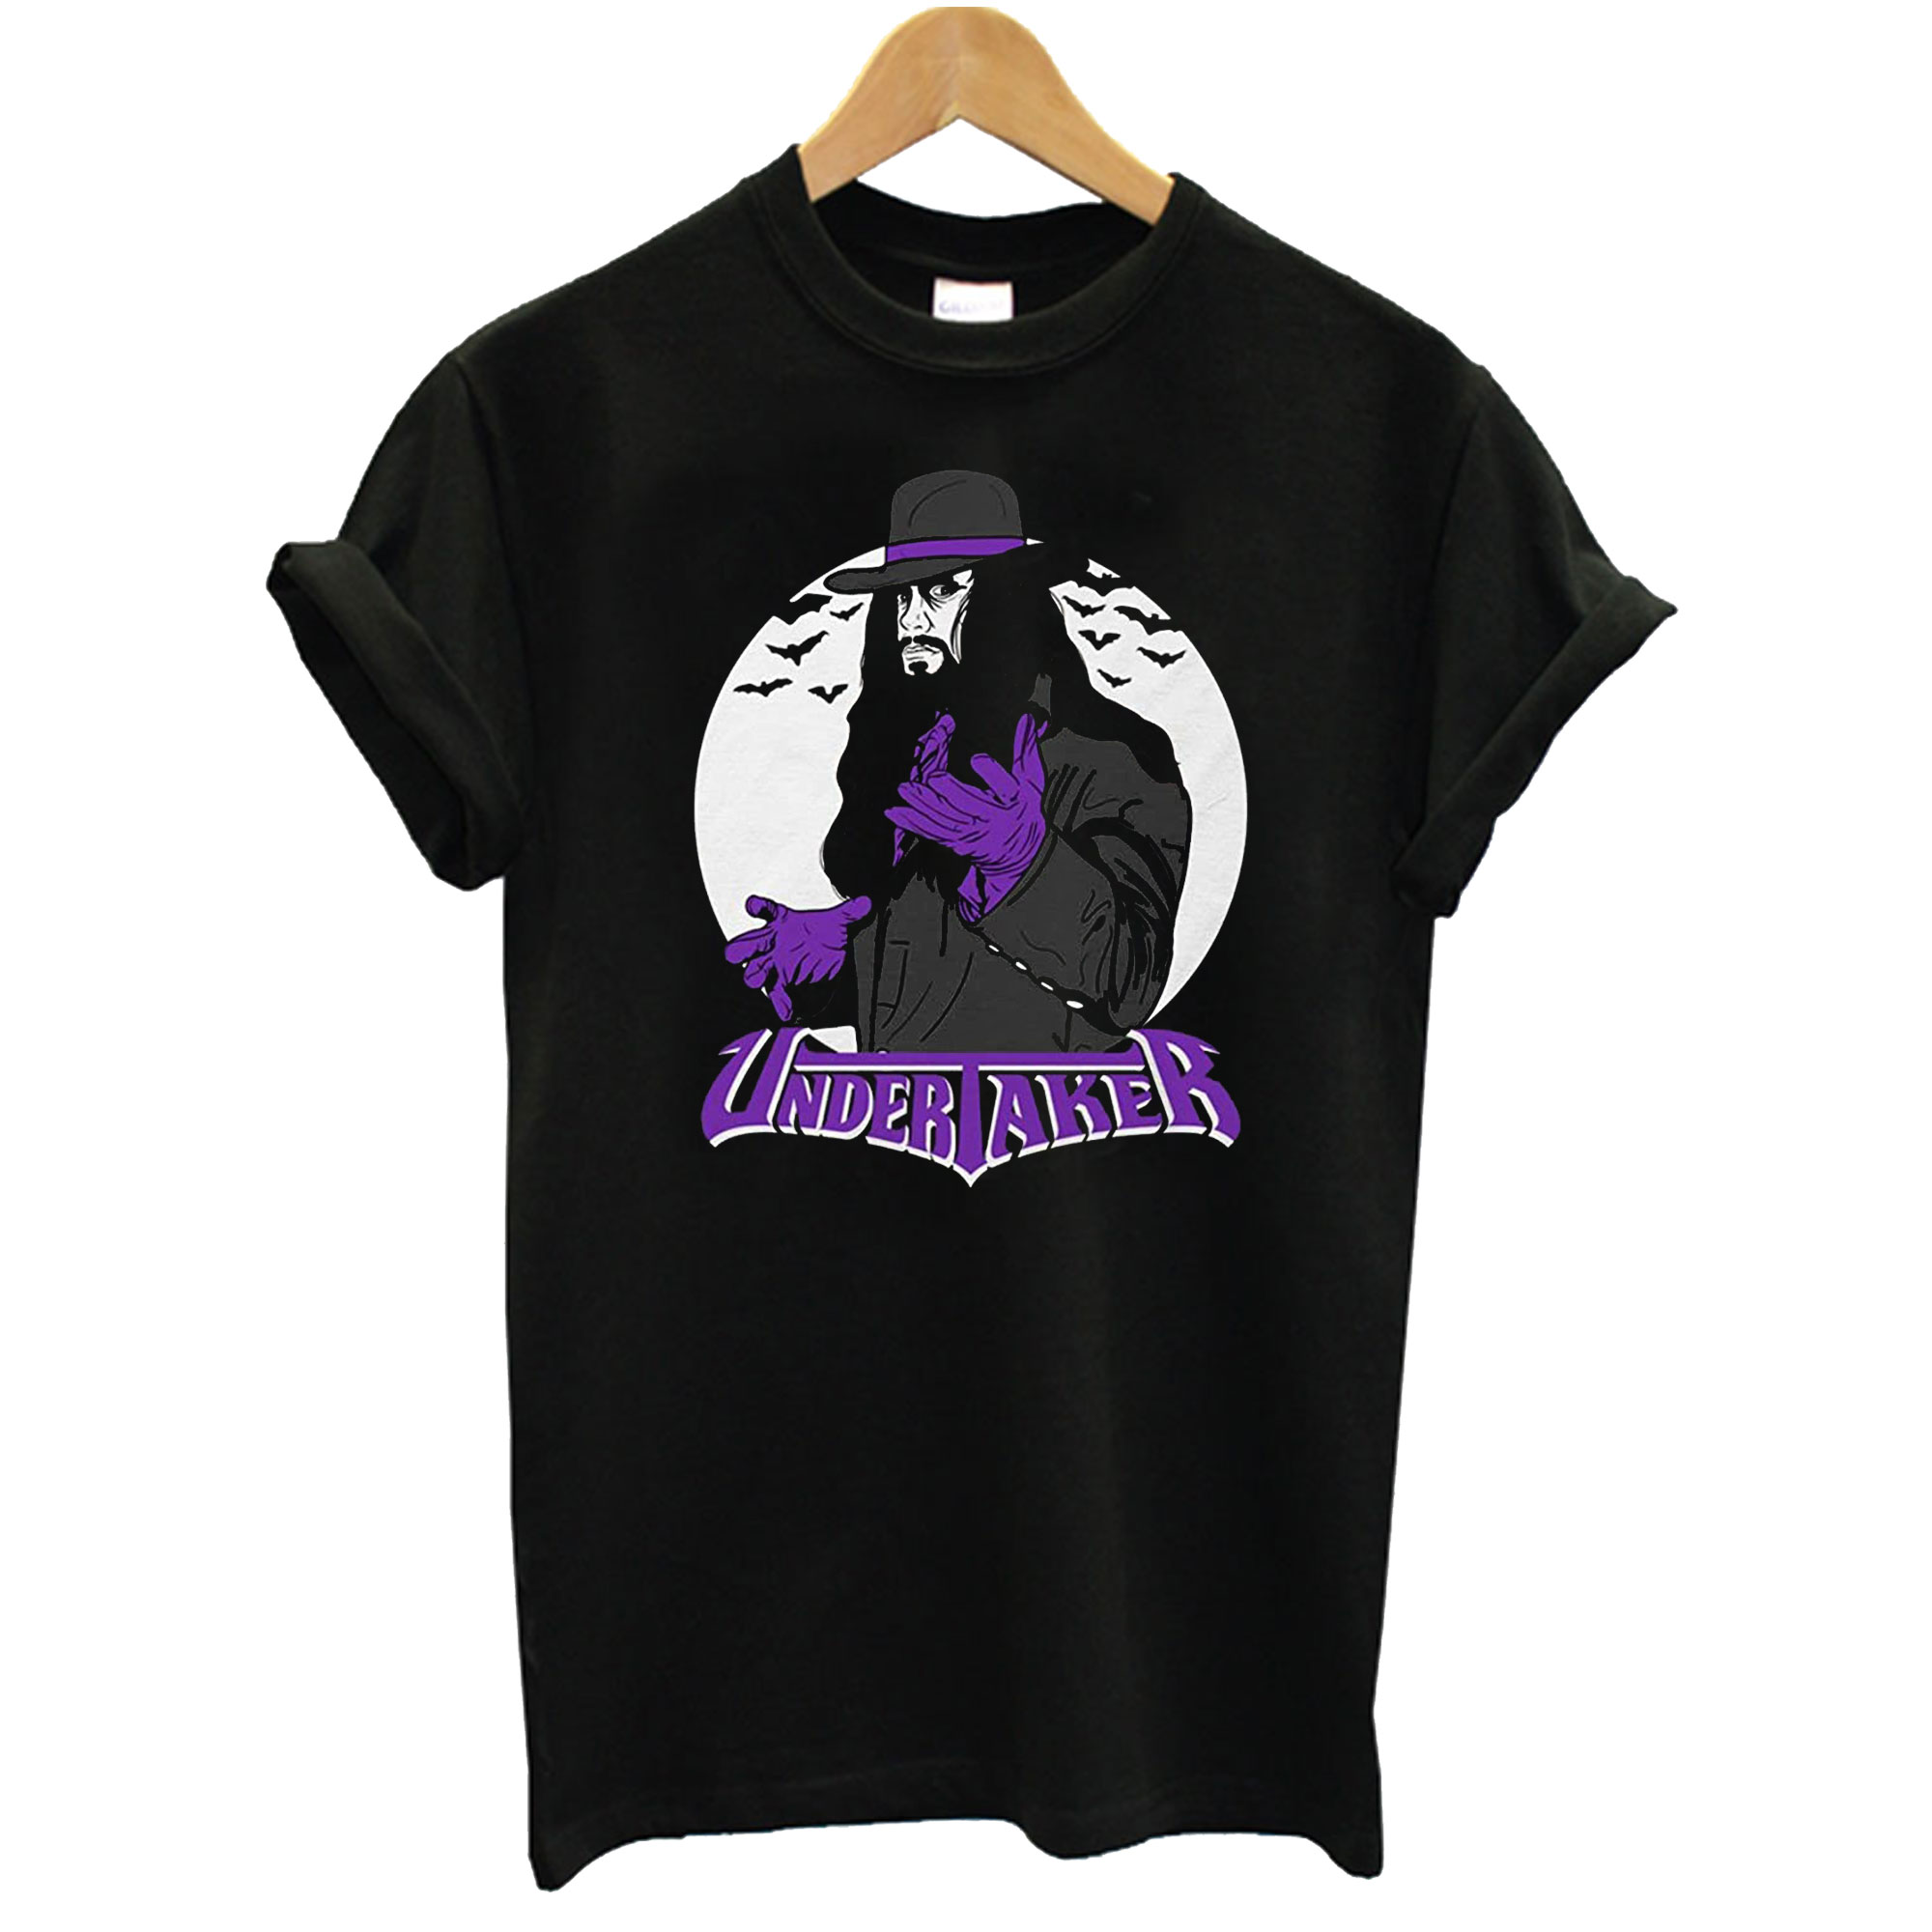 Vintage Undertaker With Logo Adult T-Shirt